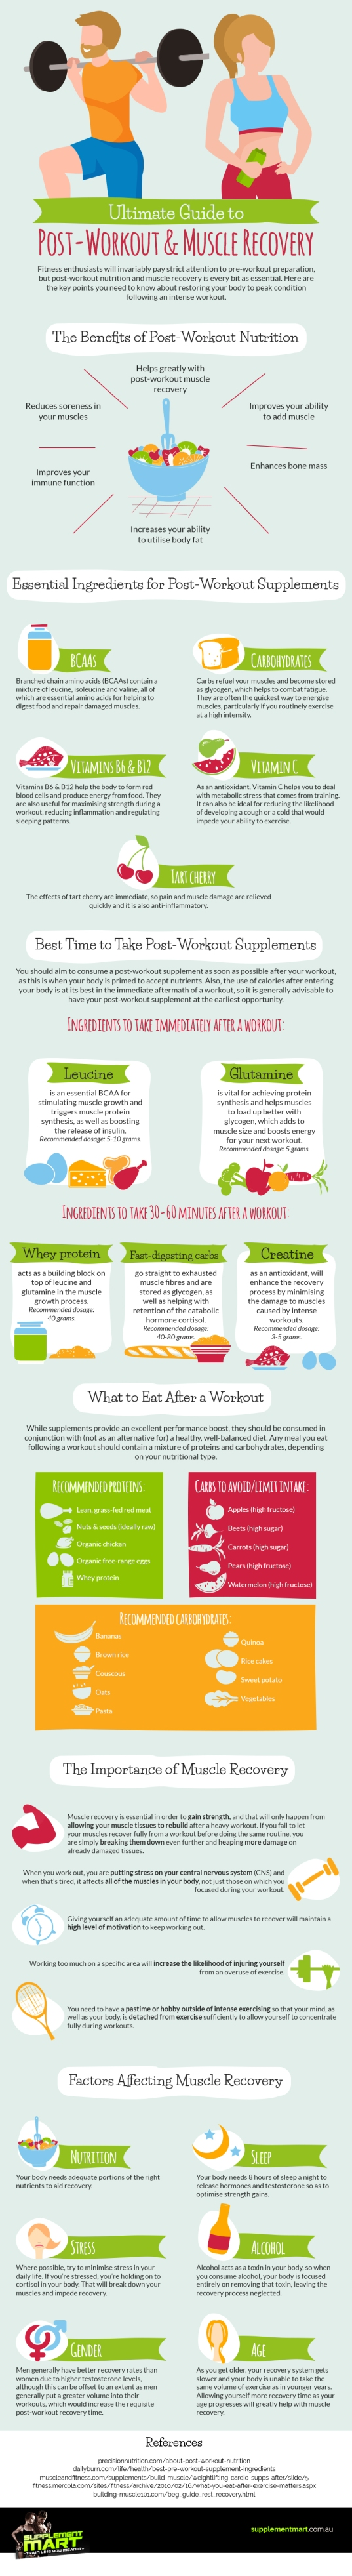 Guide-to-Post-Workout-&-Muscle-Recovery-Infographic copy